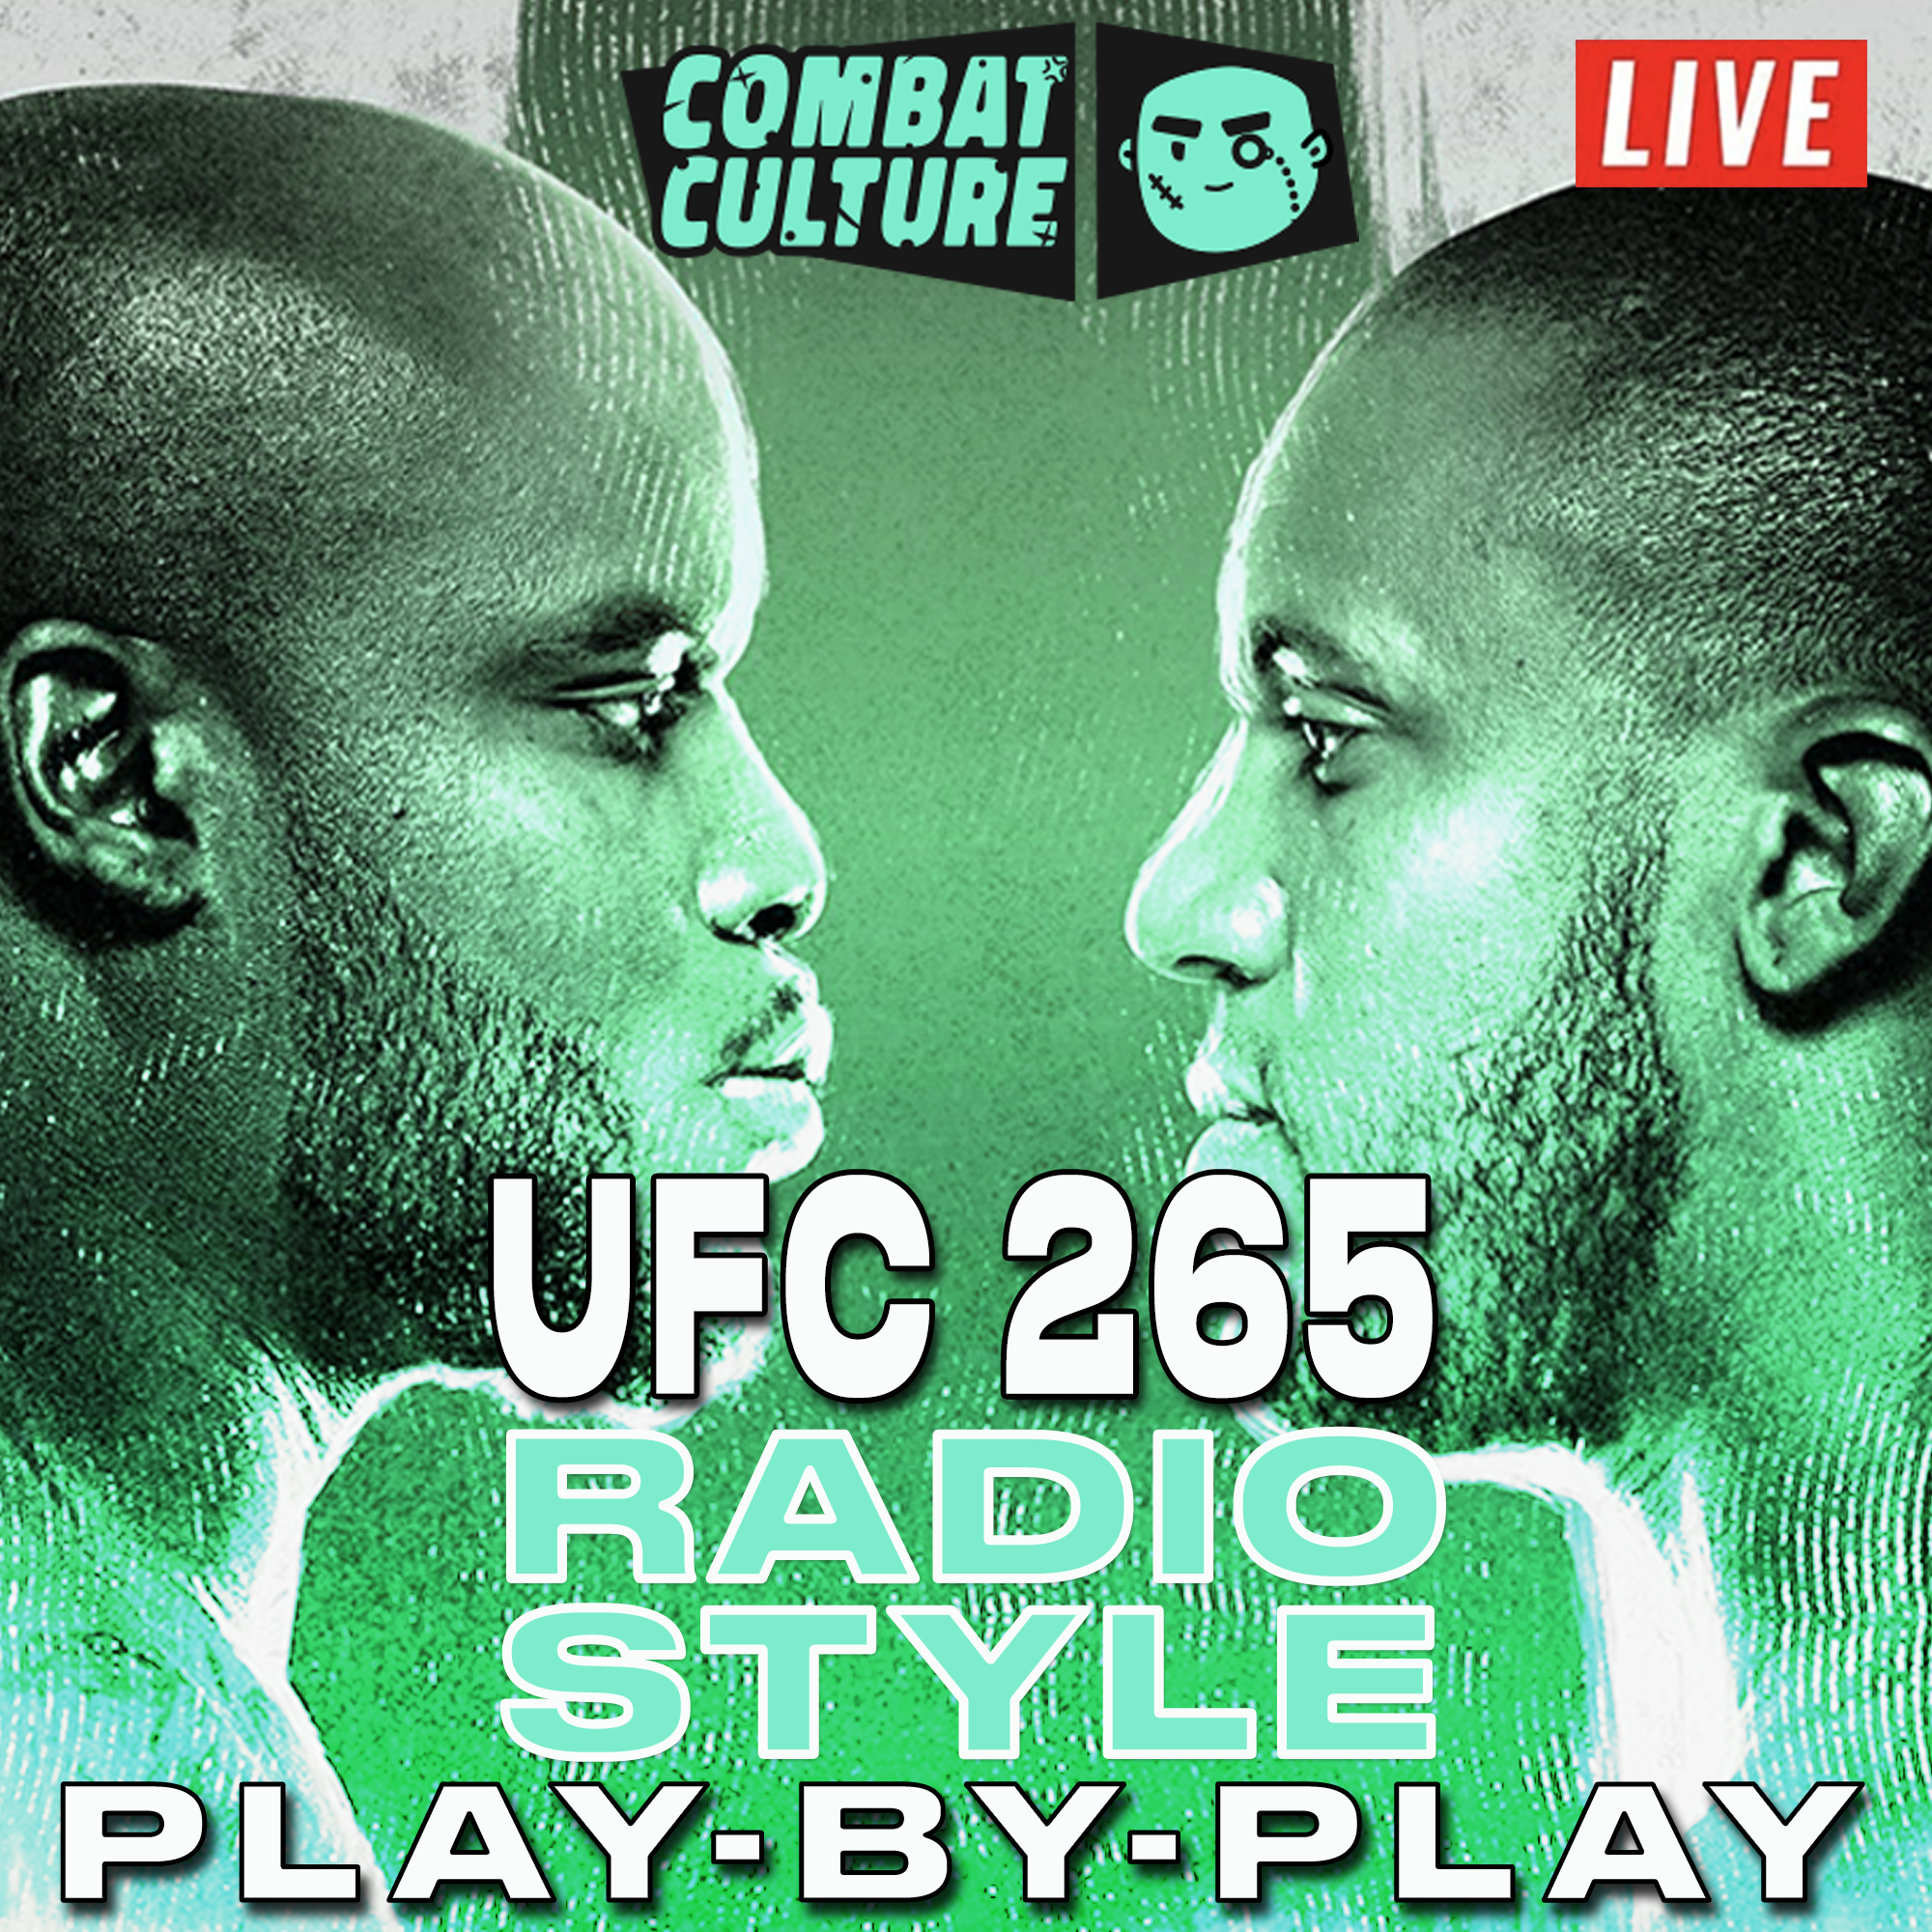 UFC 265, Radio-Style Commentary, UFC Play-by-Play, Matt Ryan, UFC 265 Radio-Style PBP Live Commentary, Lewis vs Gane, UFC Podcast, MMA Podcast,